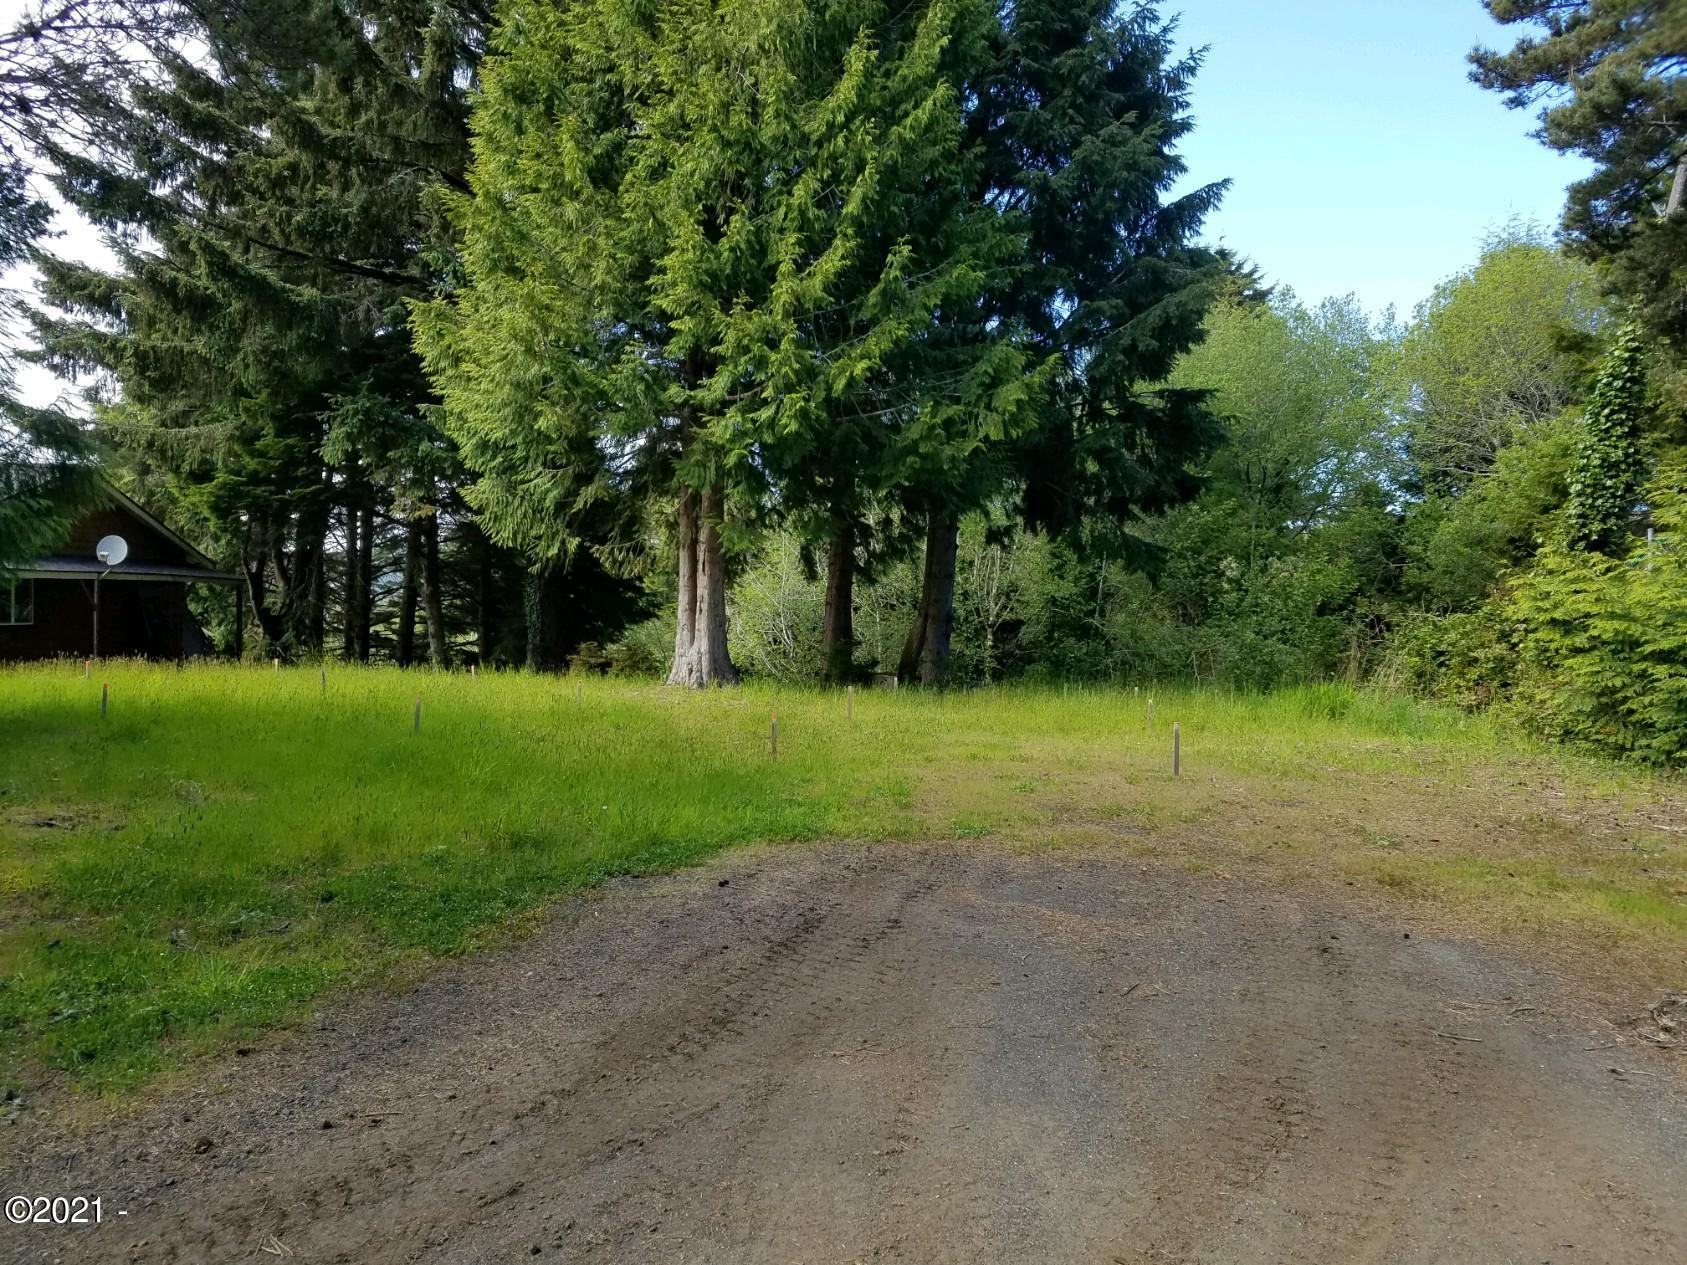 260 View Dr, Waldport, OR 97394 - 20210512_165458